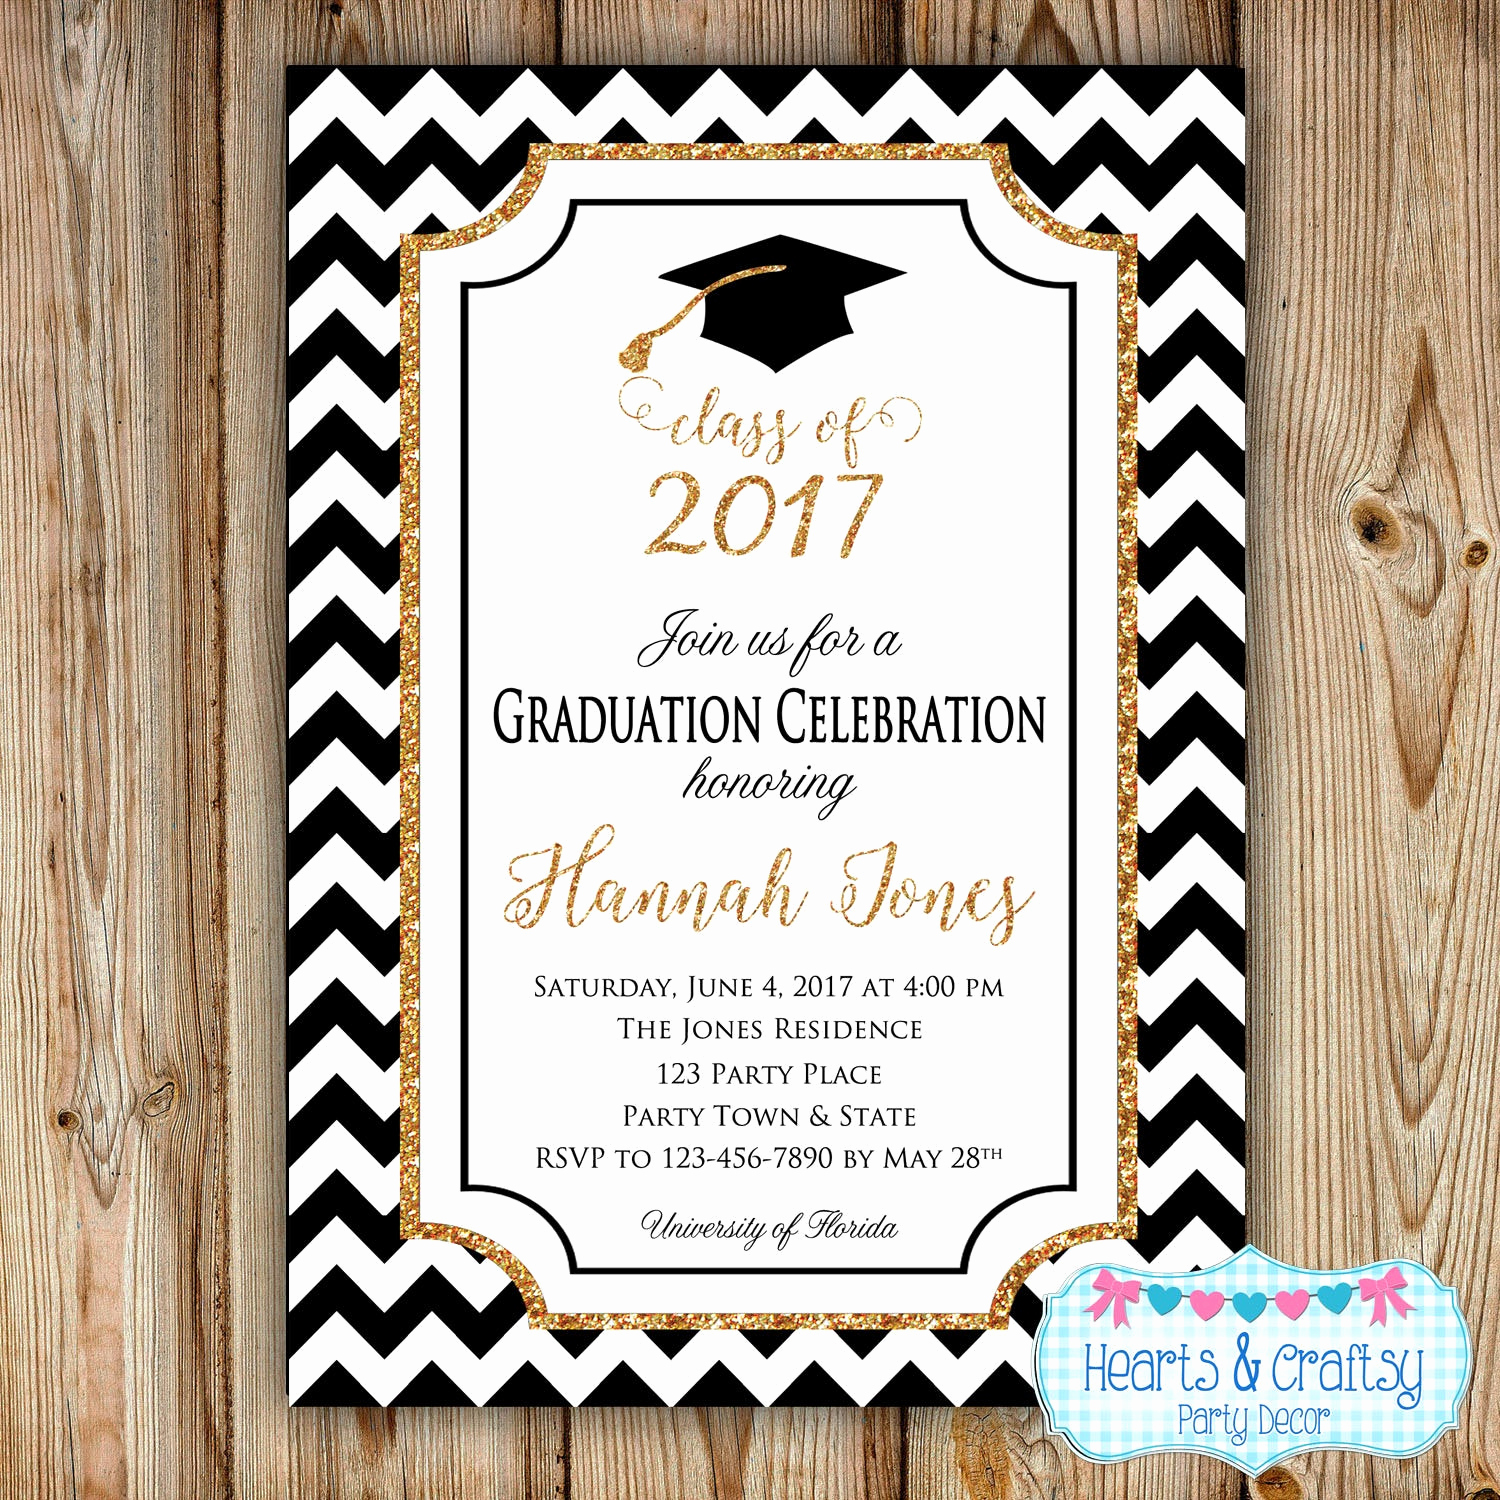 Graduation Announcement and Party Invitation Awesome Graduation Party Invitation College Graduation Invitation